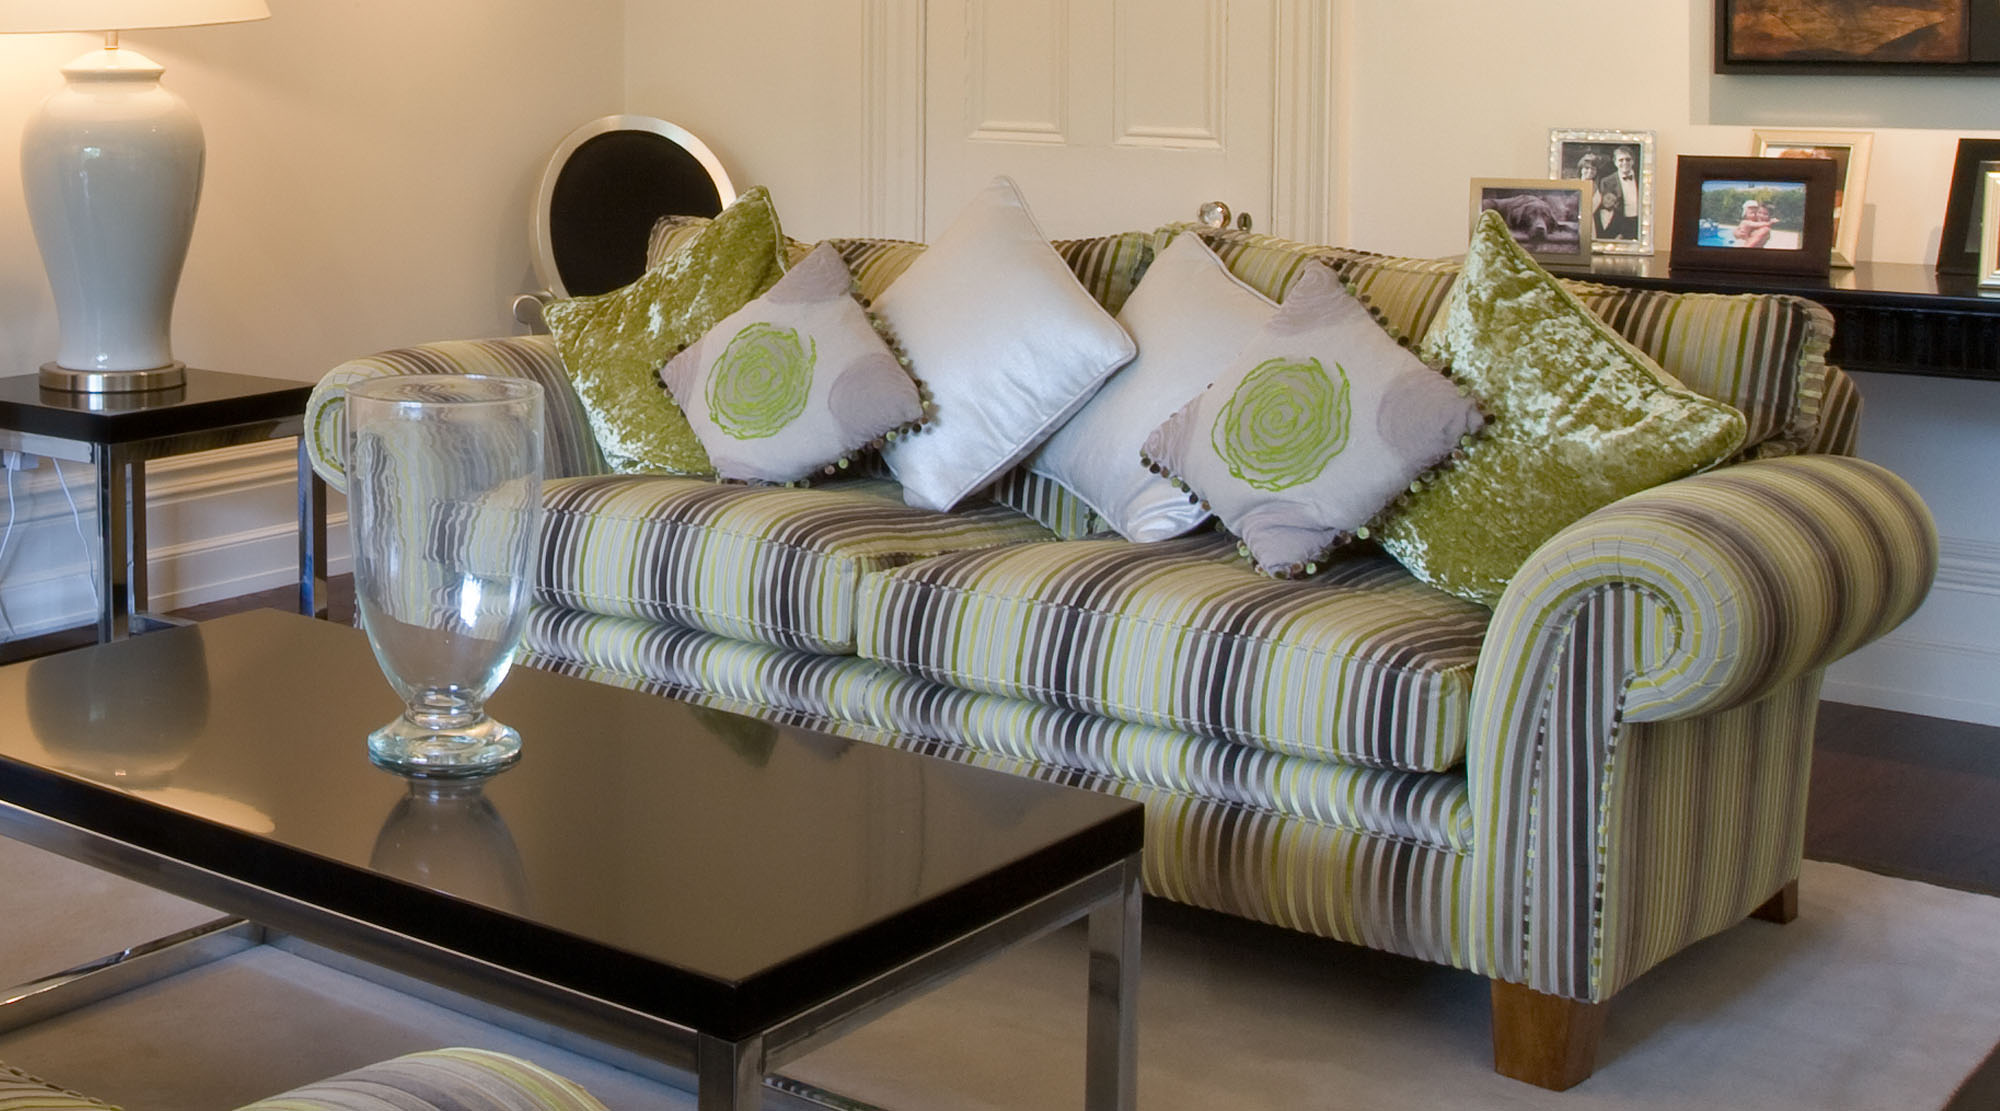 Sitting Room with green and grey themed sofa and luxury trimmed cushions.